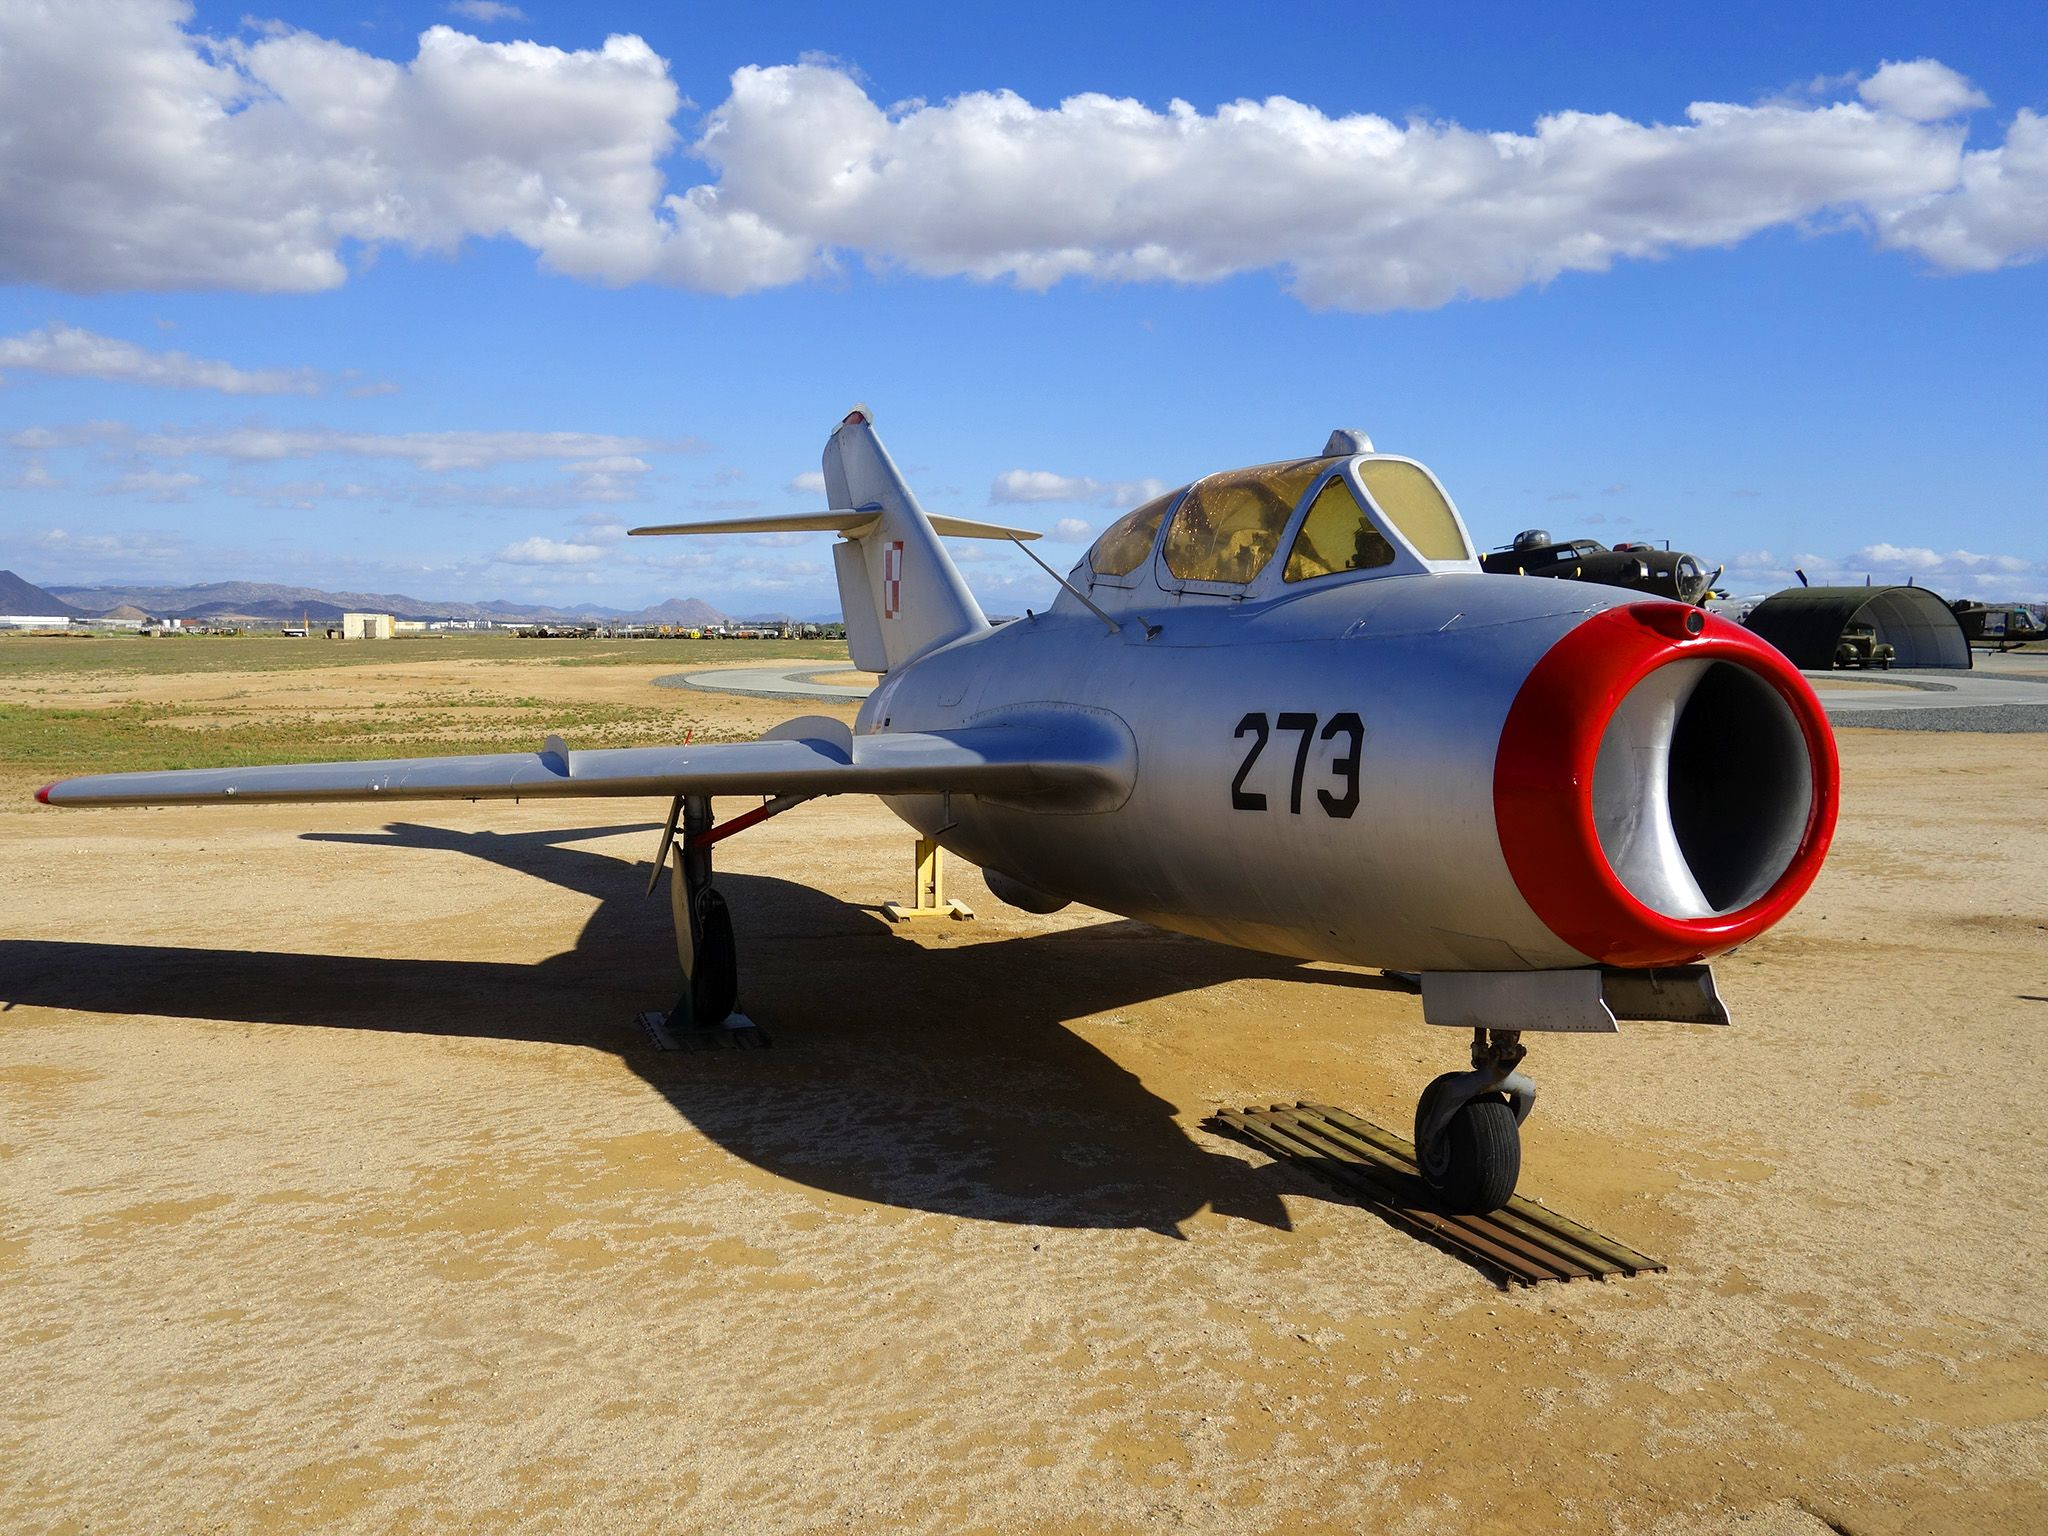 Riverside, California, USA: MiG-17 is a high-subsonic fighter aircraft, it was researched at Area... [Фото дня - Октябрь 2014]